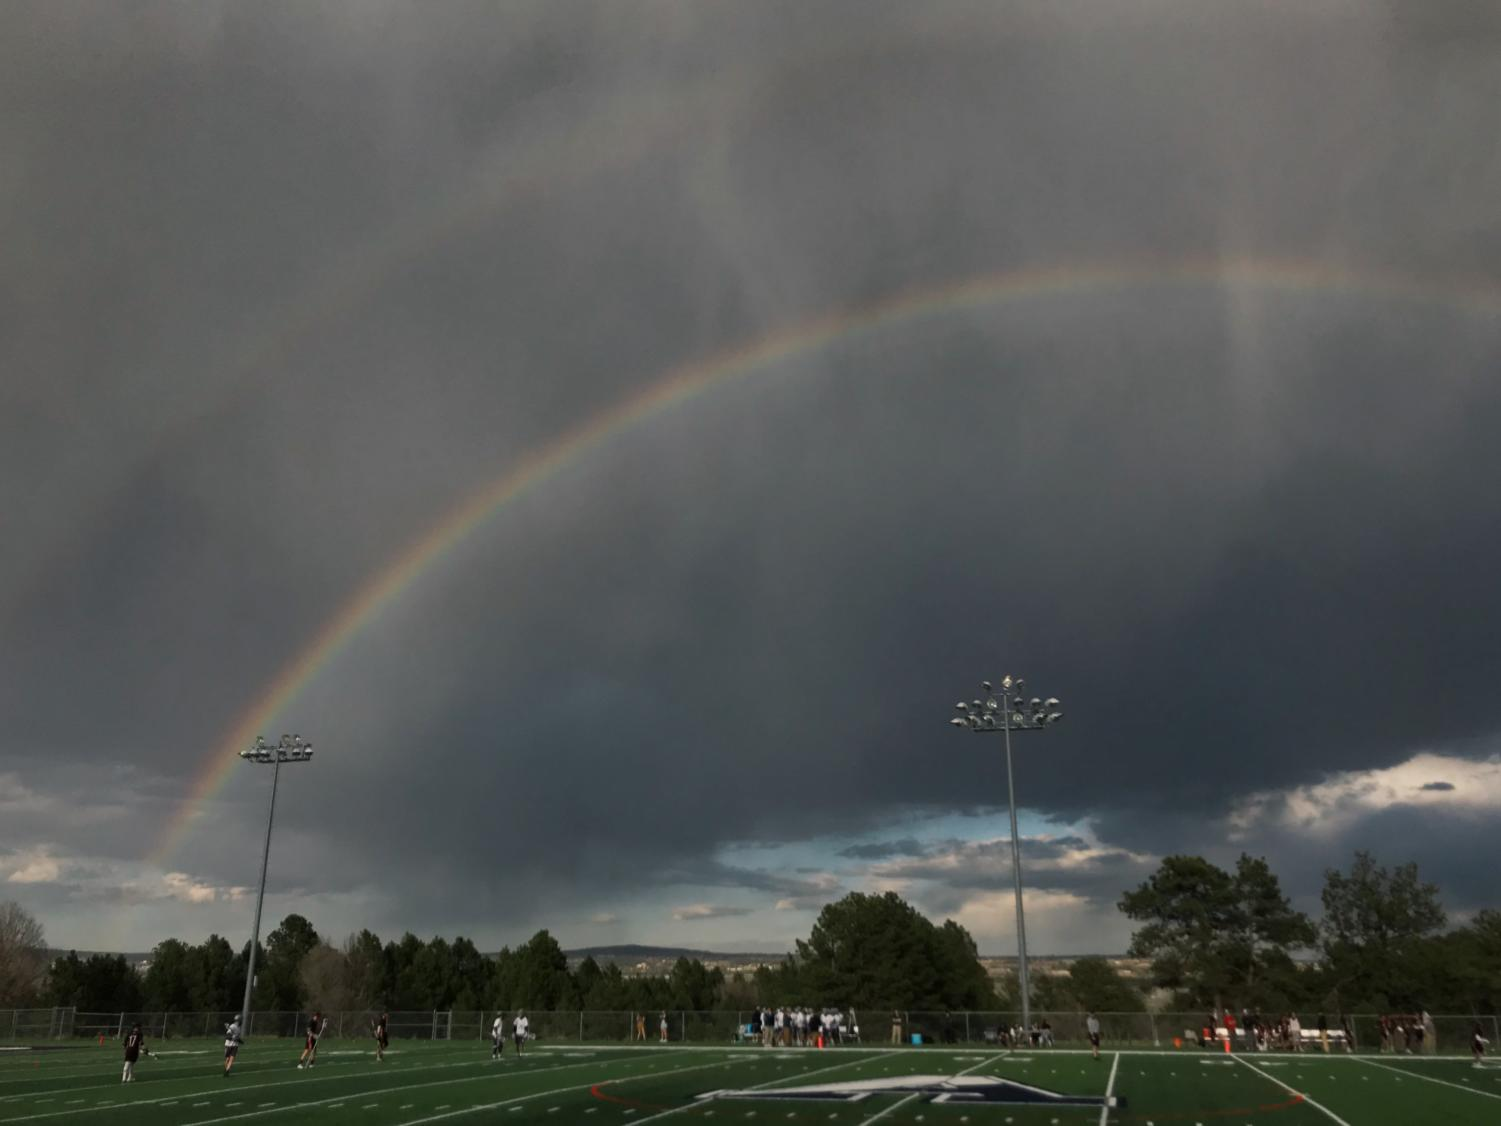 A double rainbow appears after light rain at the Boys Lacrosse game on April 24th.